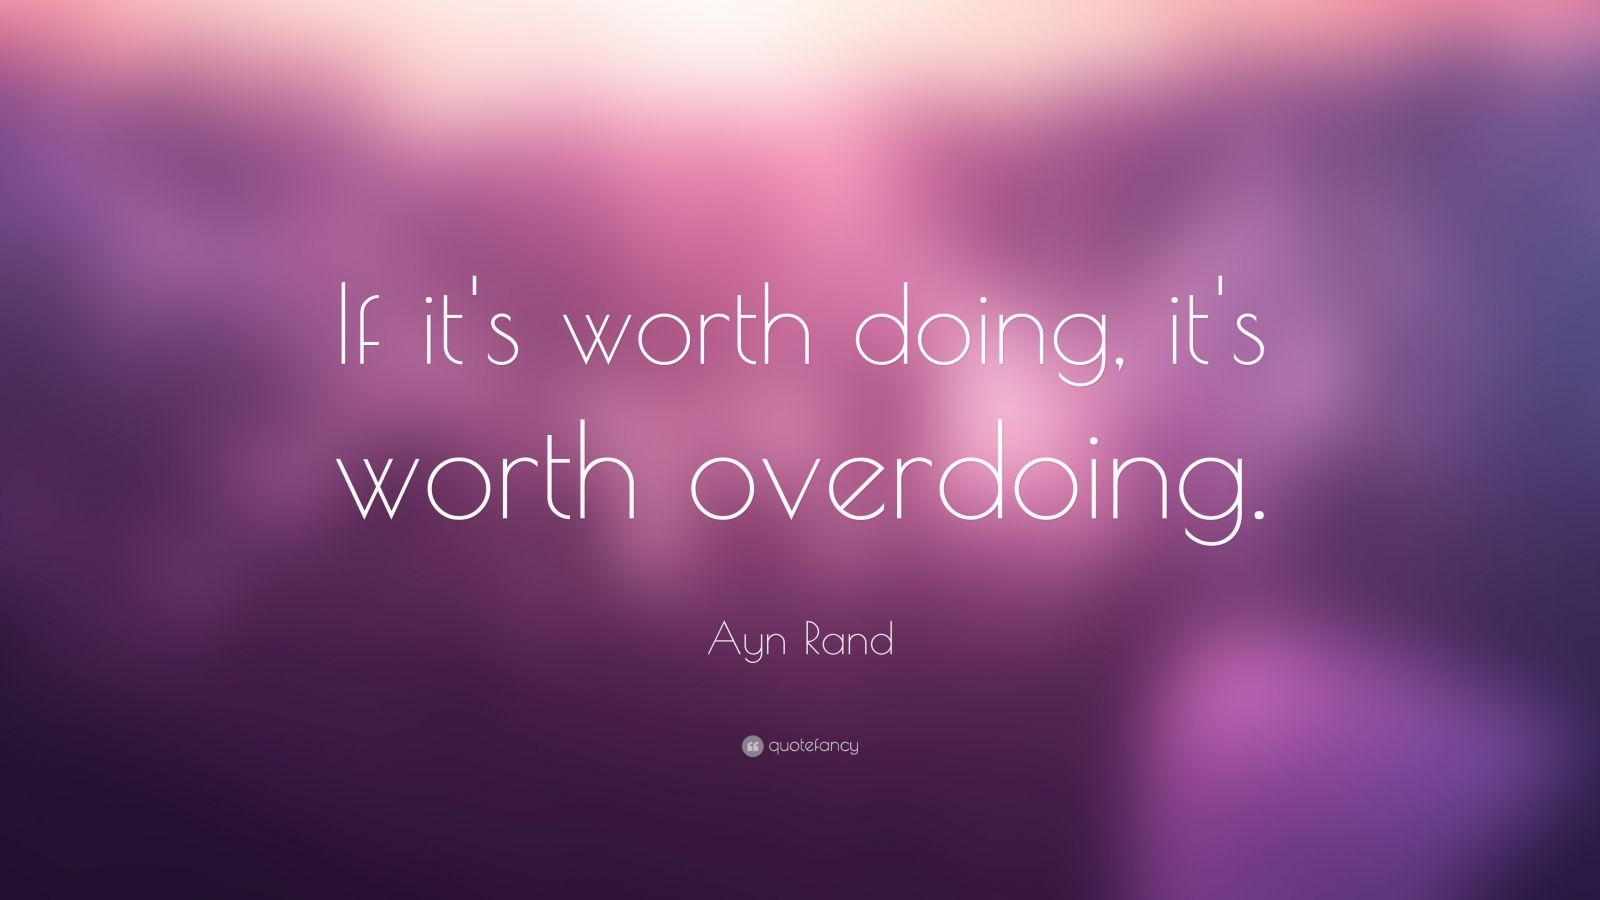 Ayn Rand Quote